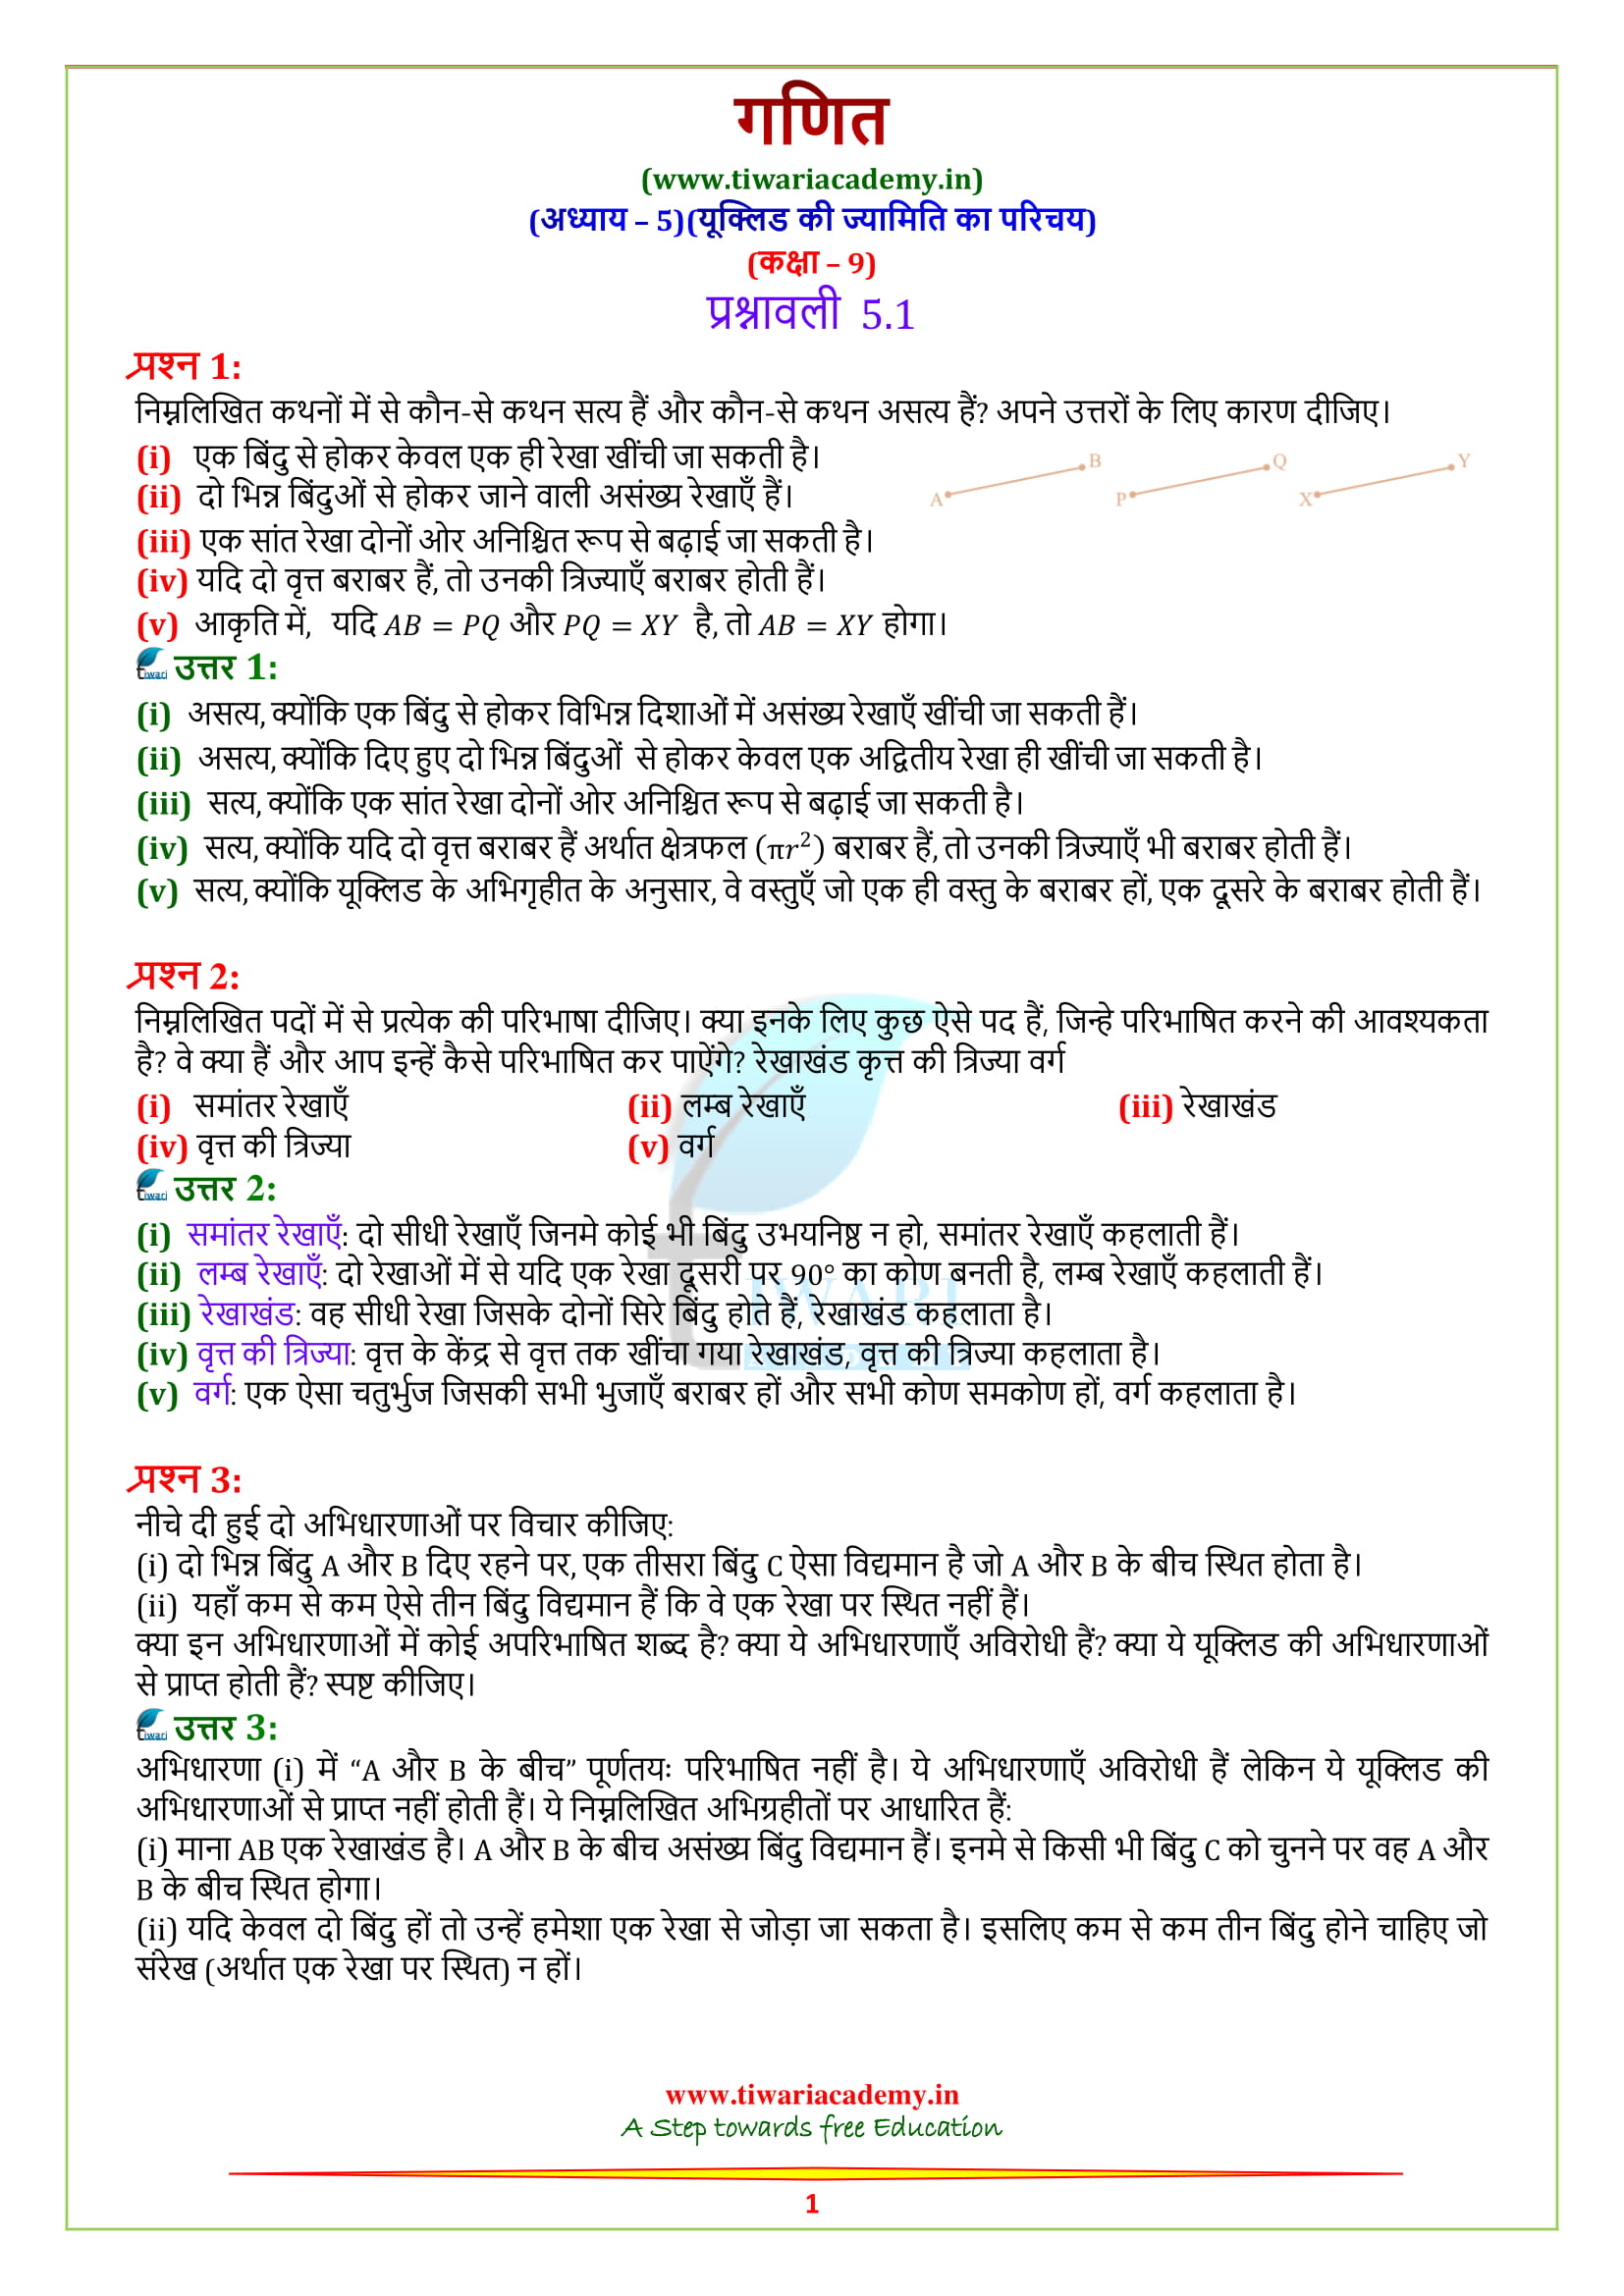 NCERT Solutions for class 9 Maths Chapter 5 Exercise 5.1 in hindi medium